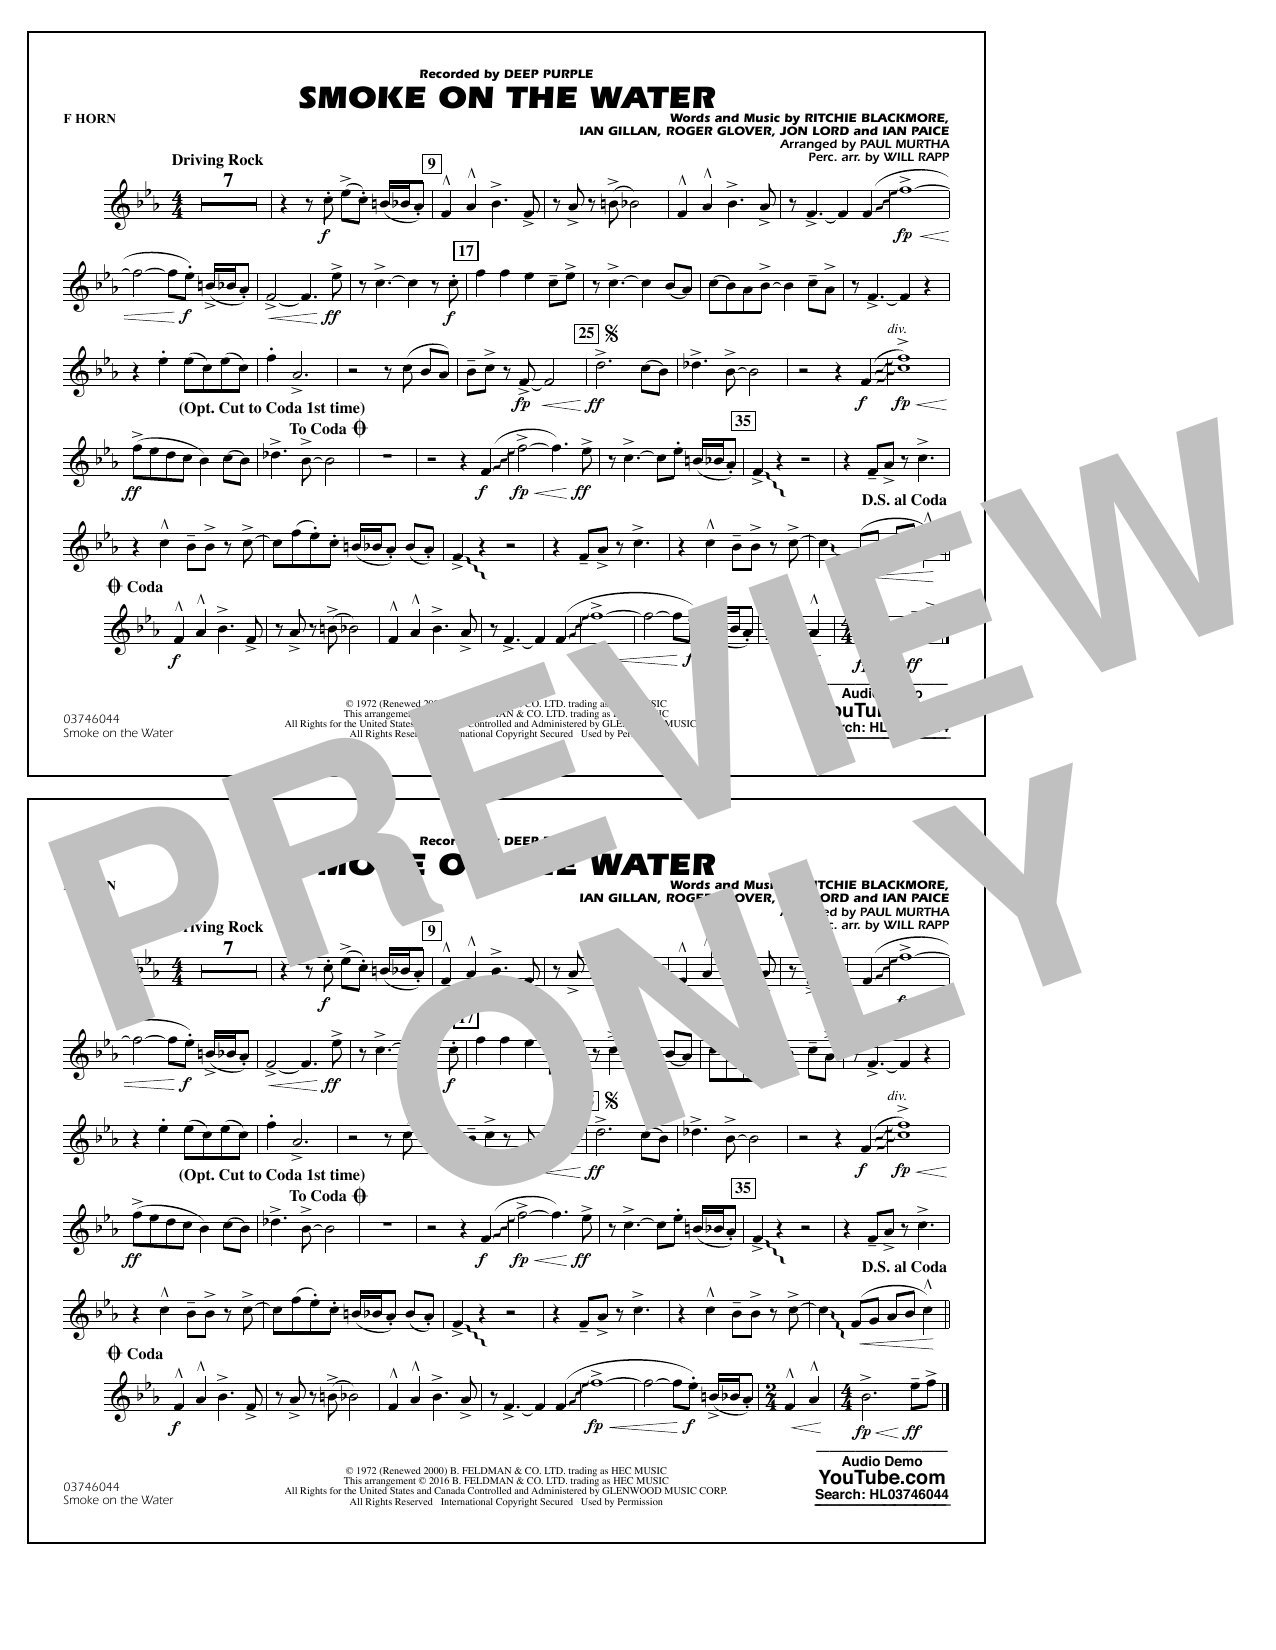 Paul Murtha Smoke on the Water - F Horn sheet music notes and chords. Download Printable PDF.